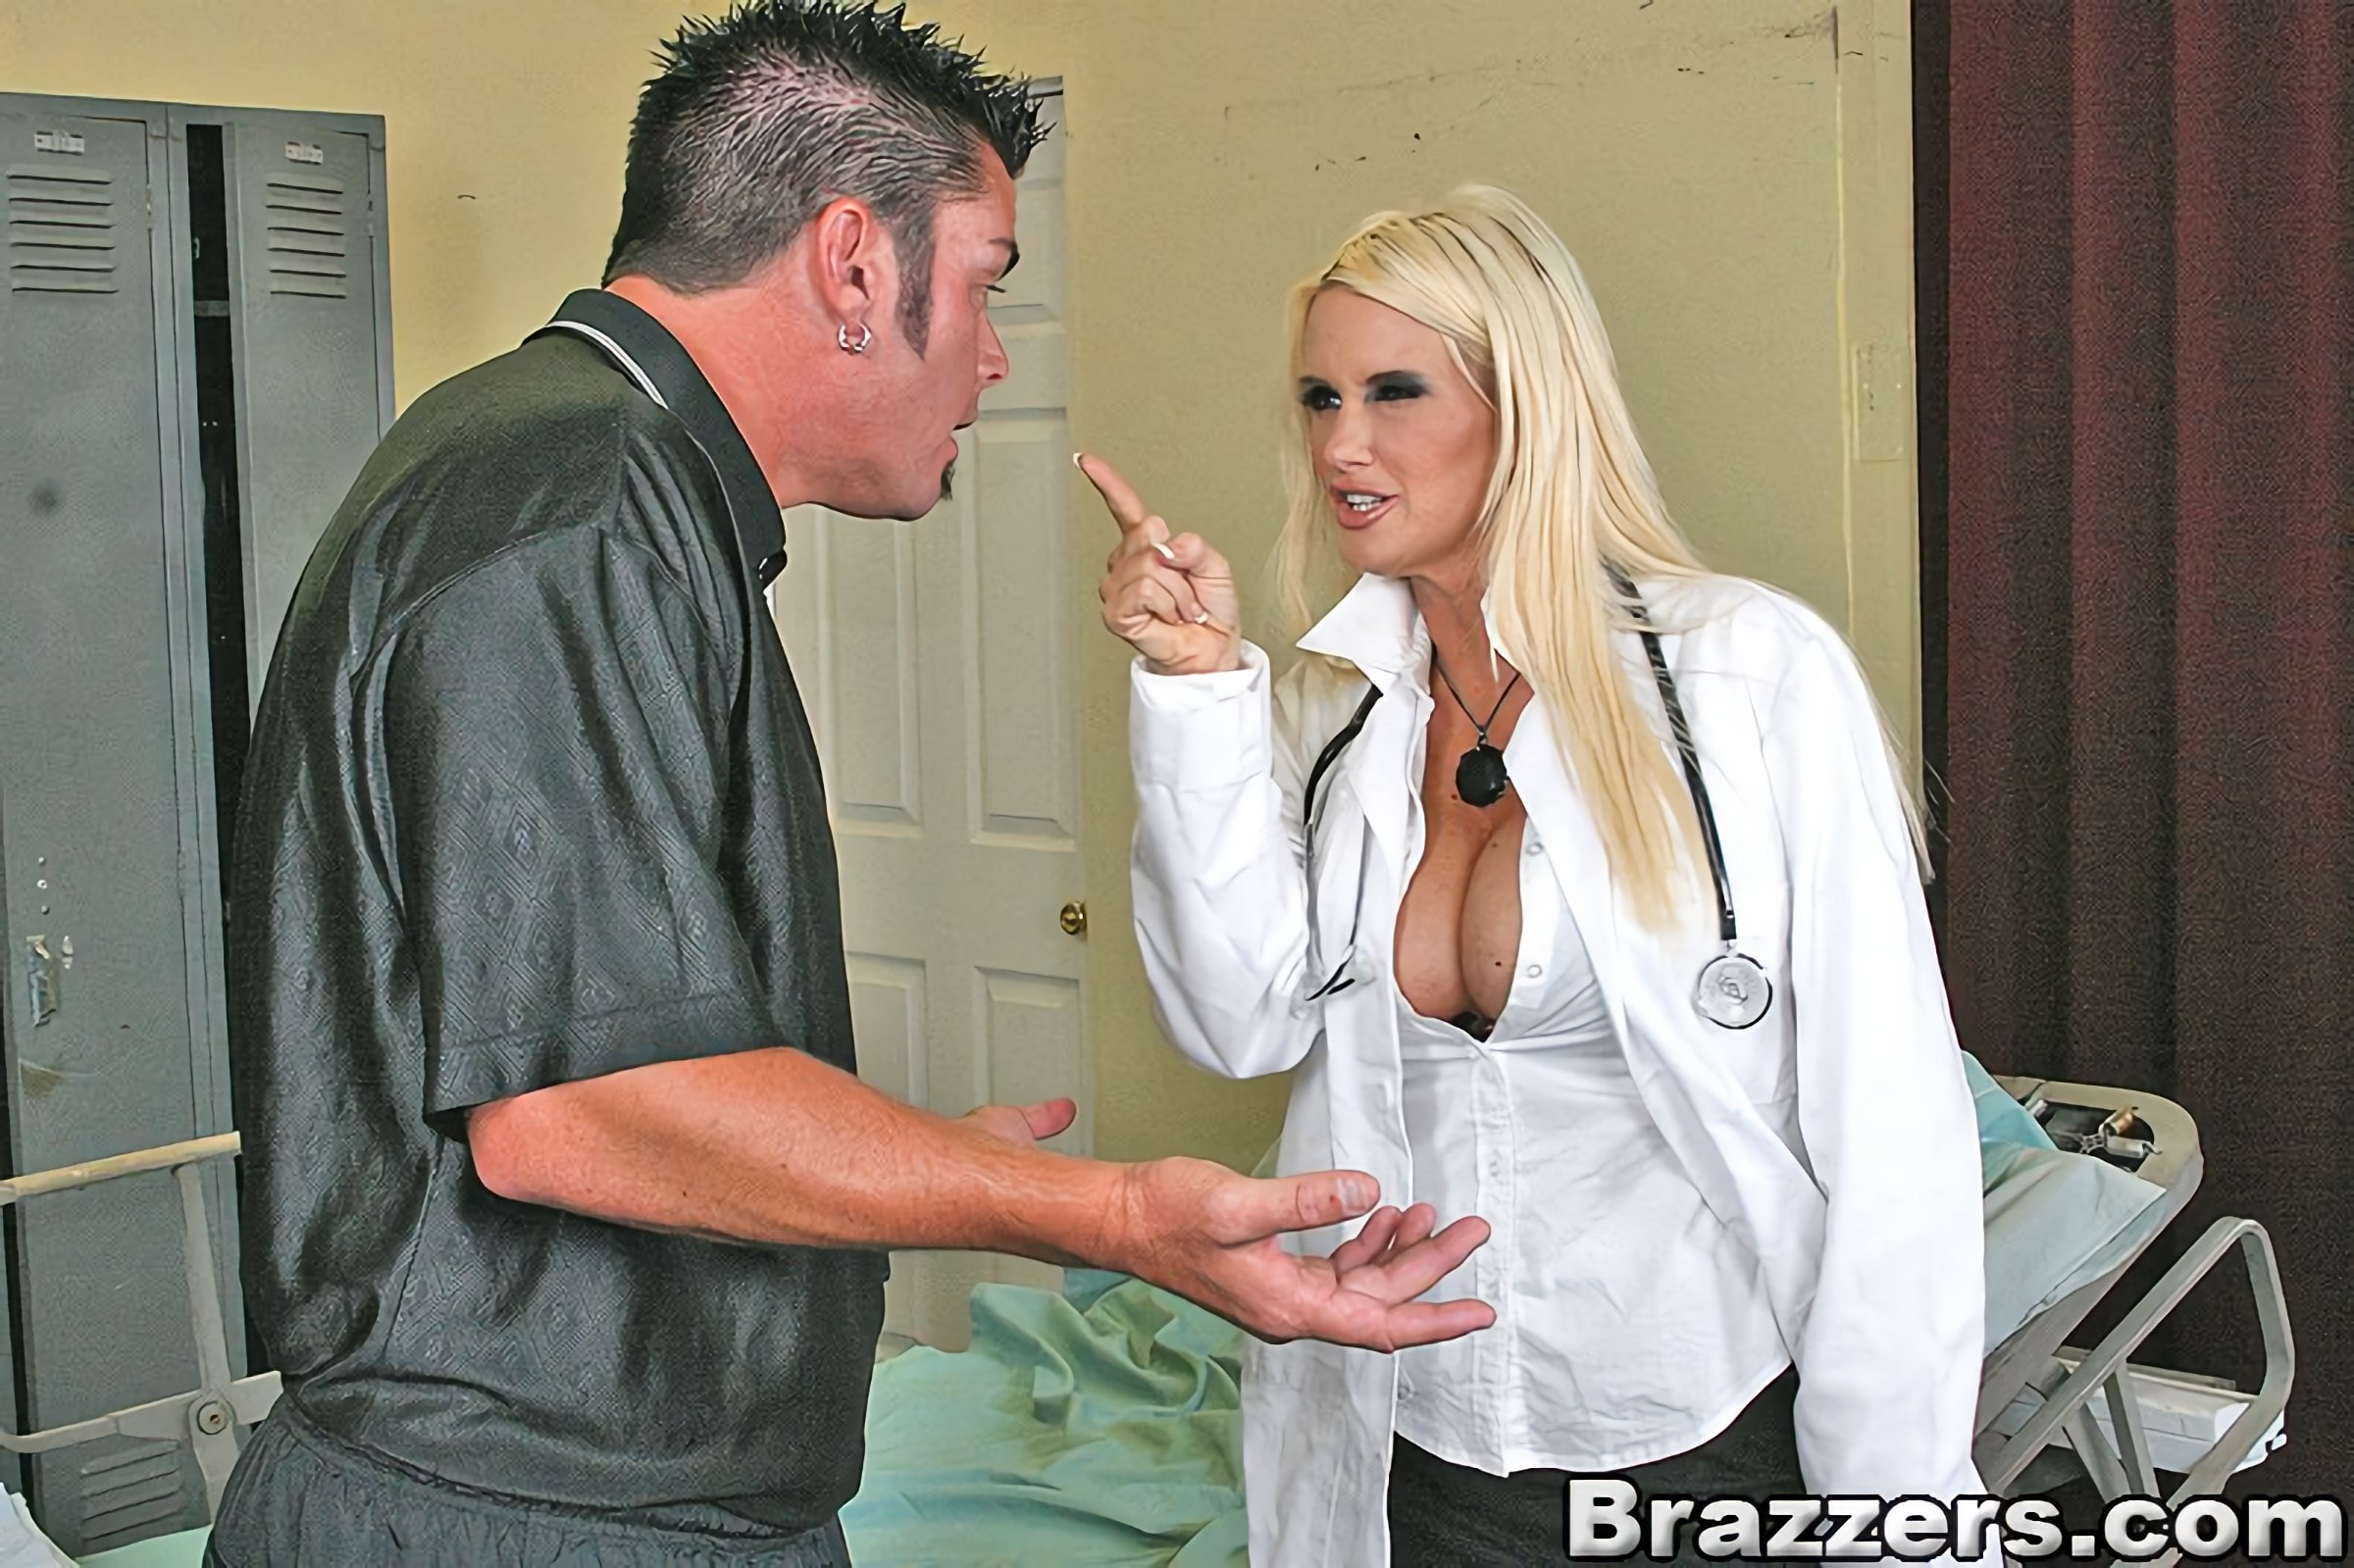 Brazzers 'Take One For The Team.' starring Rhyse Richards (photo 6)